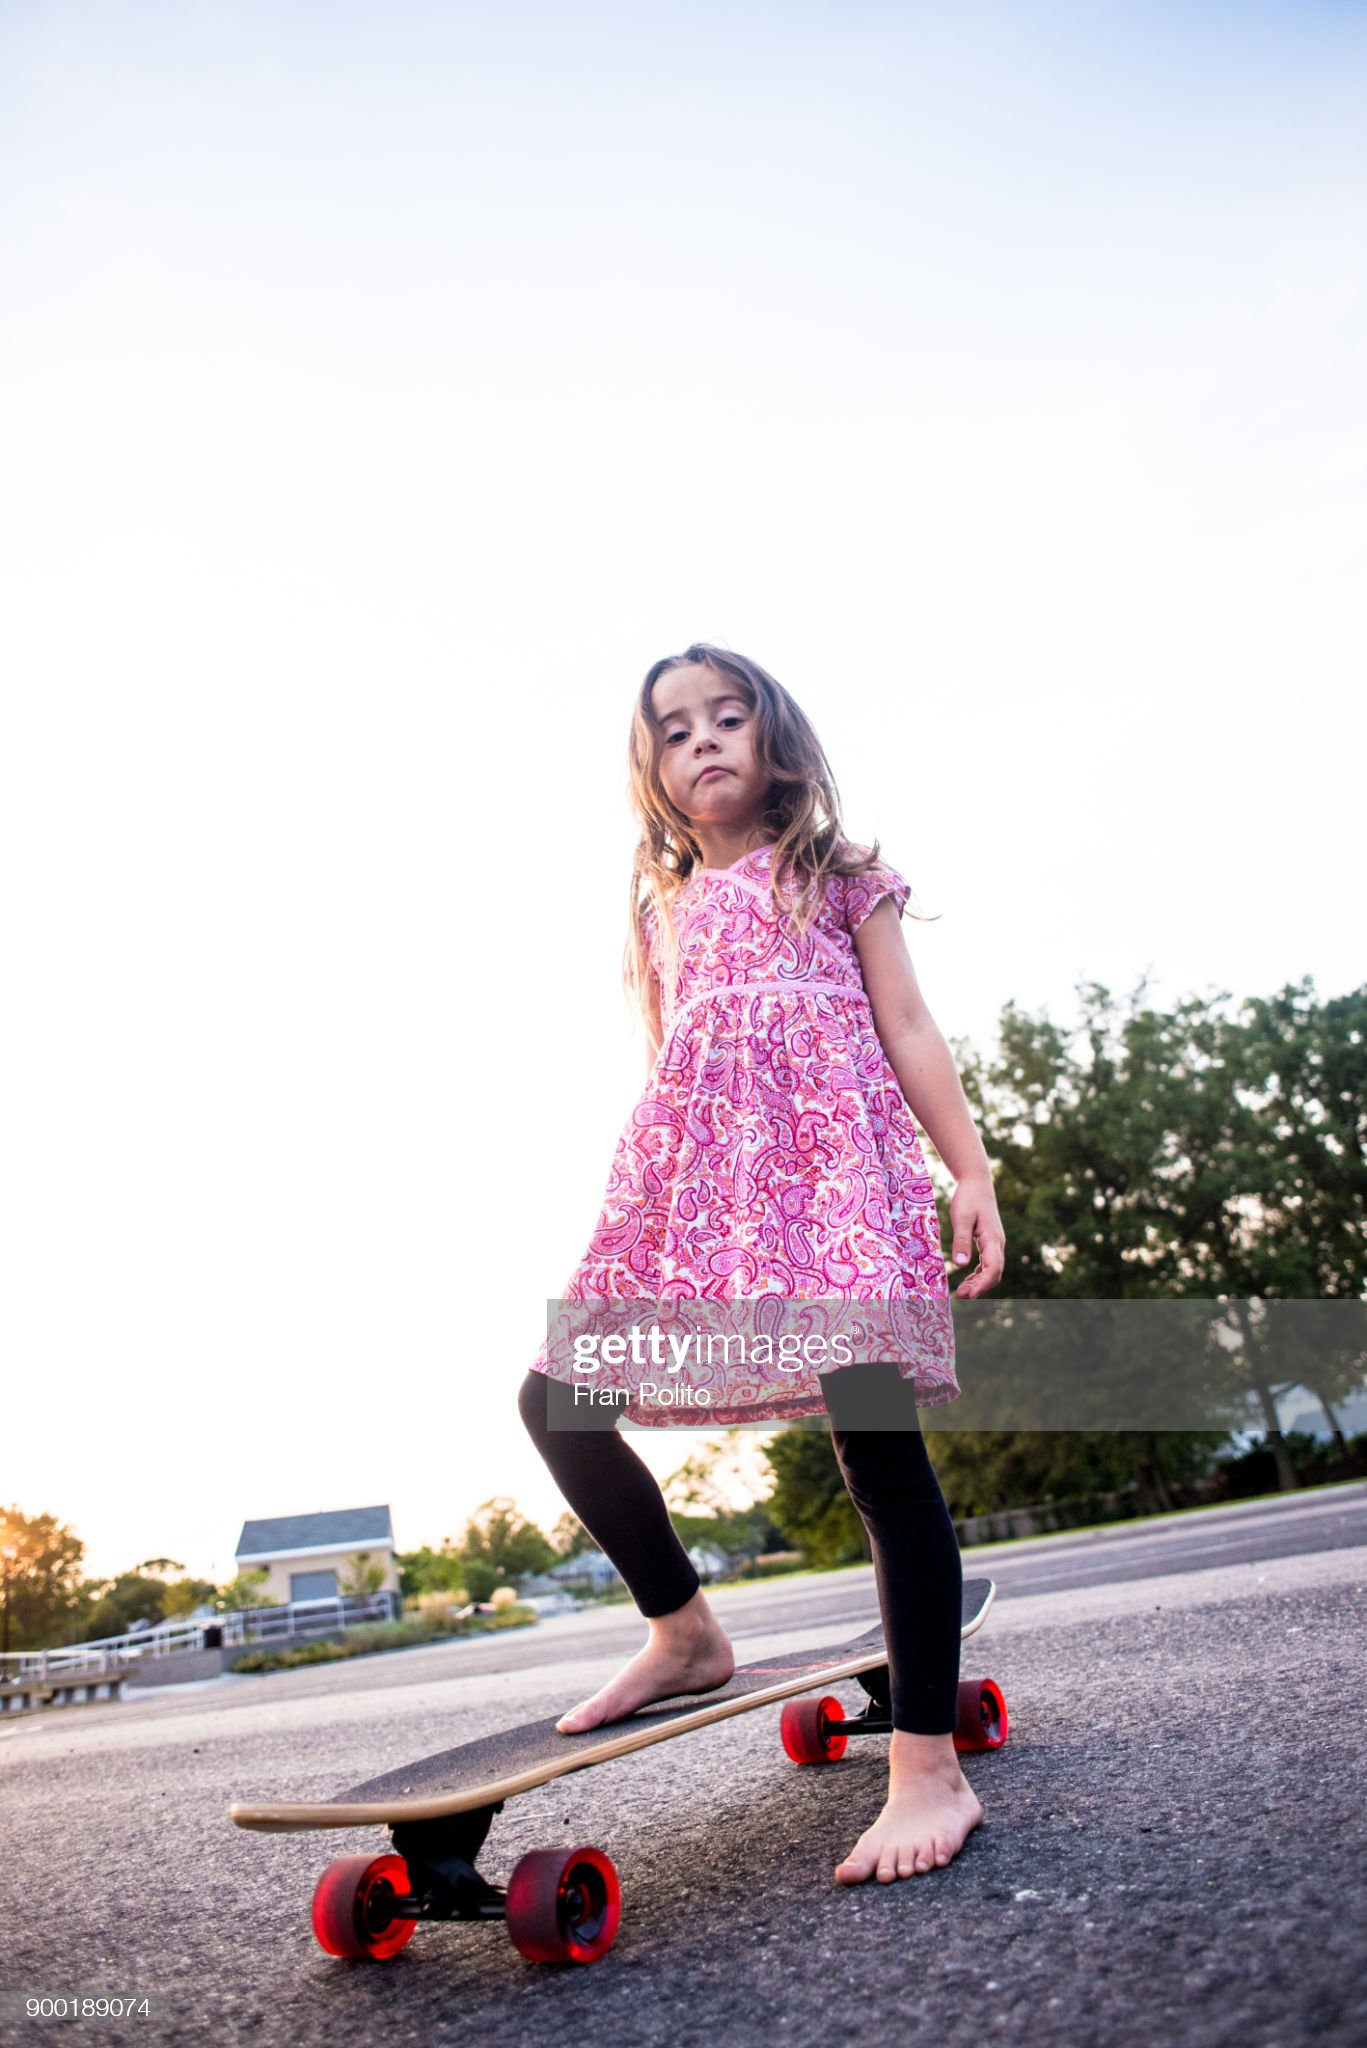 https://media.gettyimages.com/photos/confident-young-girl-standing-on-her-skateboard-picture-id900189074?s=2048x2048